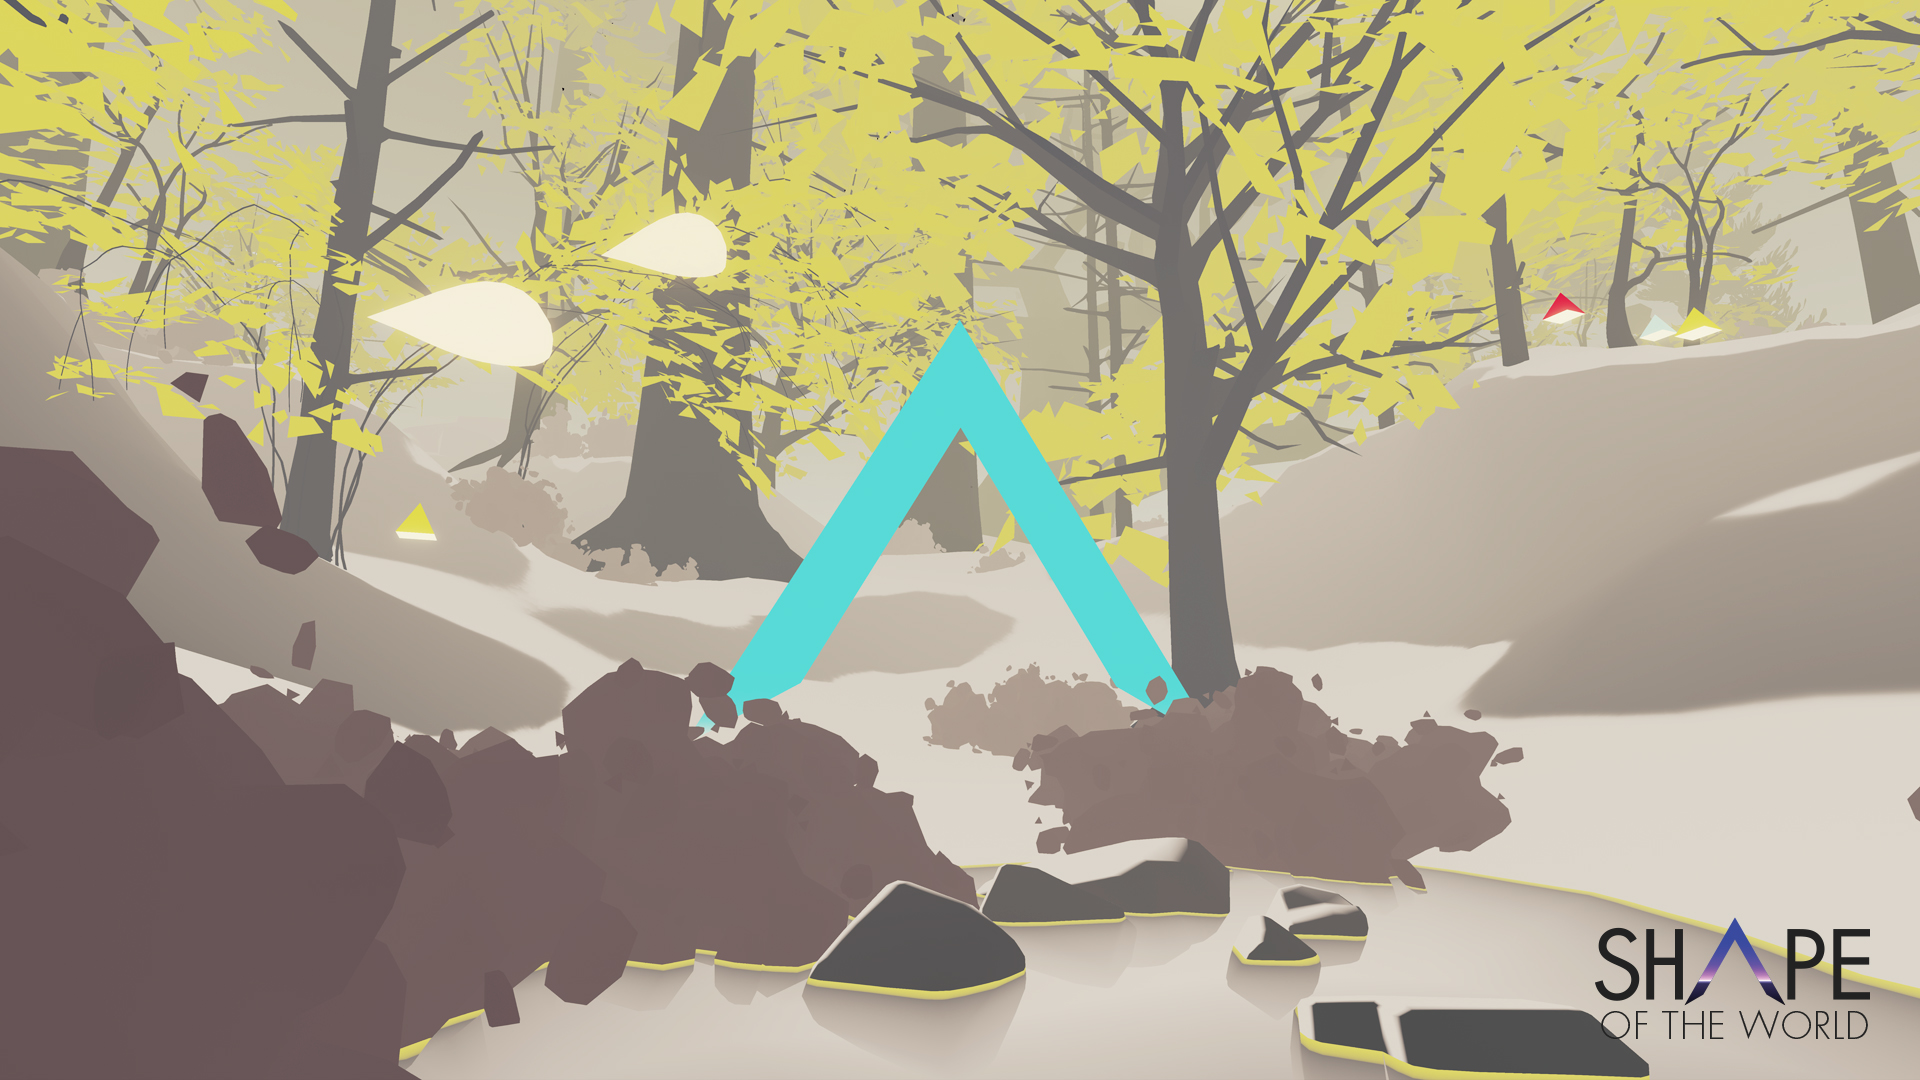 This triangle shape is a gate that the player can place in the forest. Going through it changes ... well, you'll see.